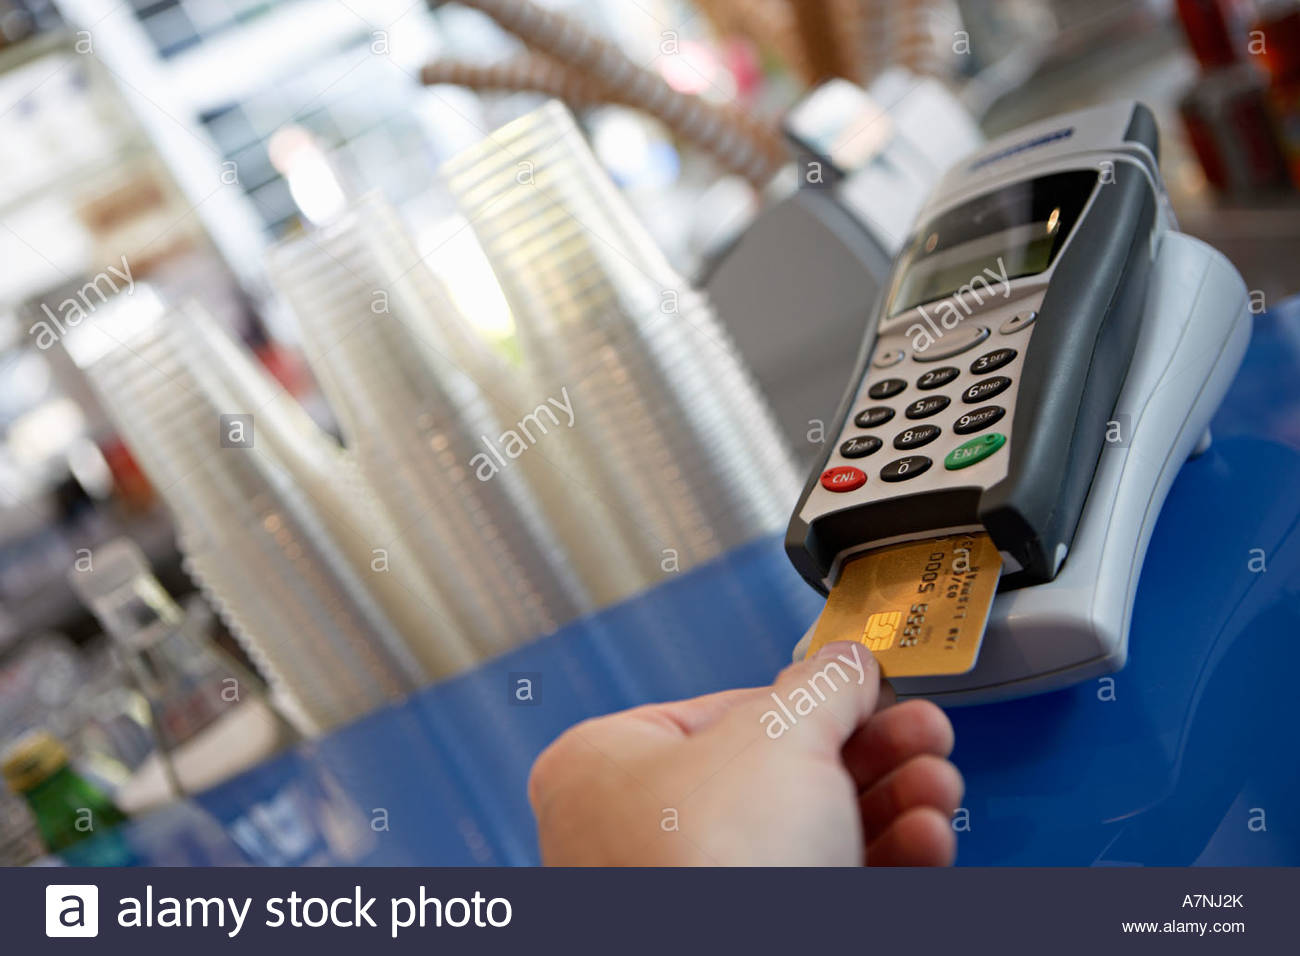 Customer placing bank card in credit card reader close up rear view personal perspective tilt - Stock Image